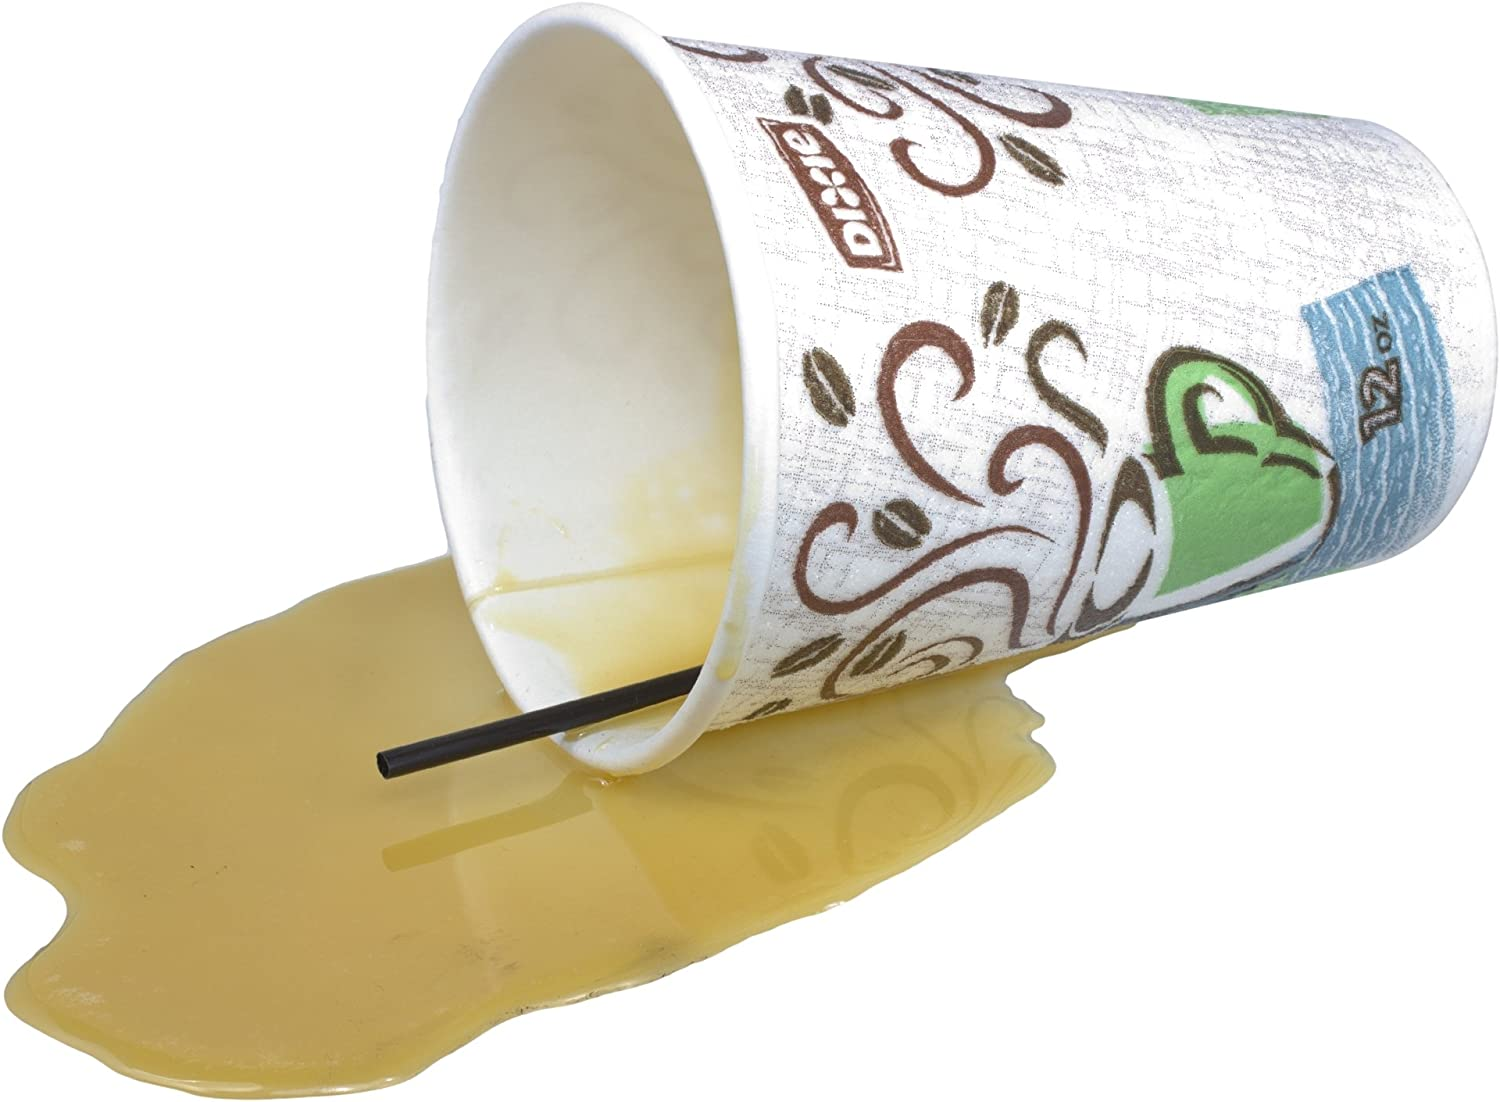 Just Dough It 7.5'' Spilled Disposable Cup of Coffee Replica Prop